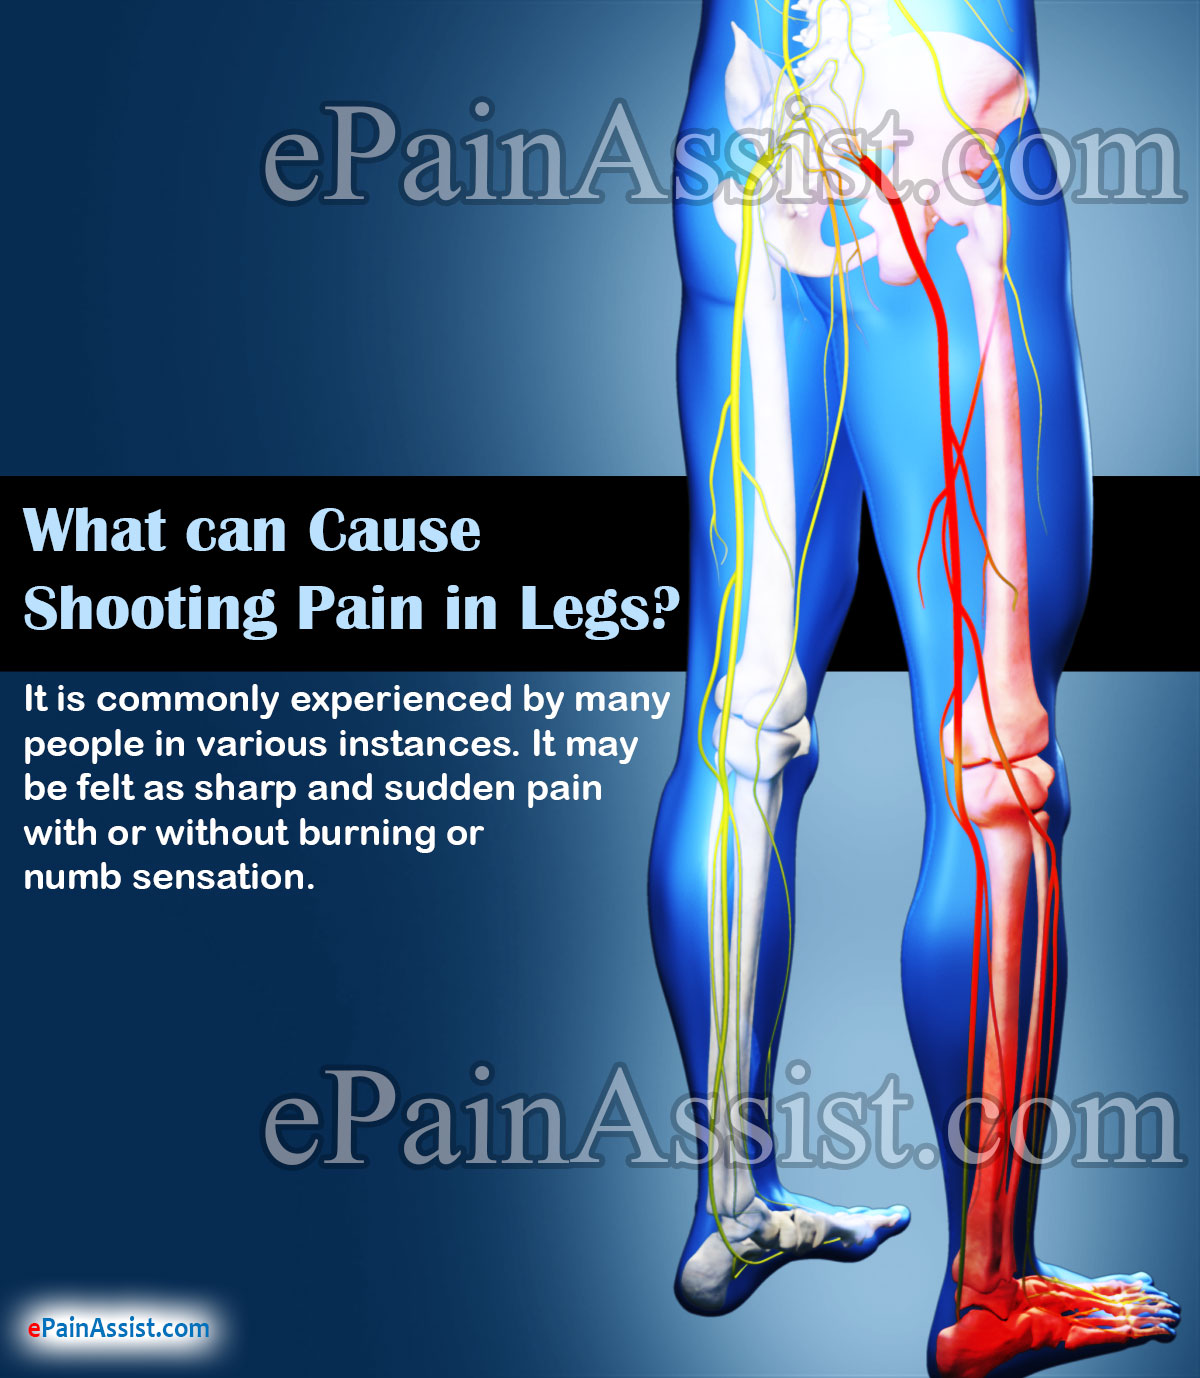 What can Cause Shooting Pain in Legs?